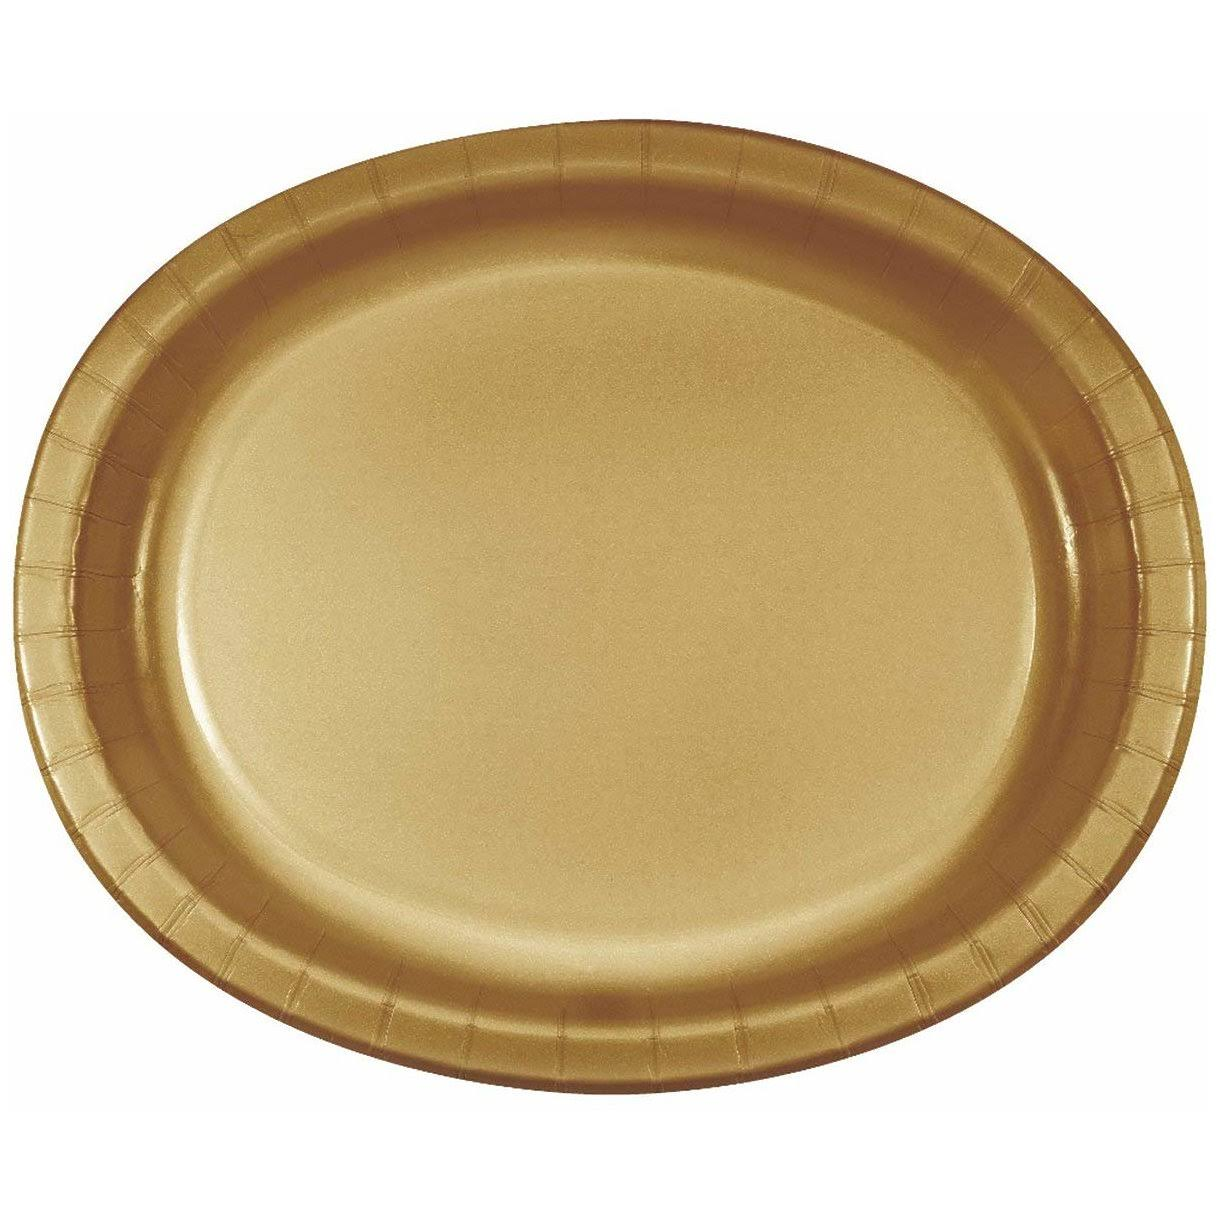 Creative Converting Oval Paper Platters - Glittering Gold, 8ct